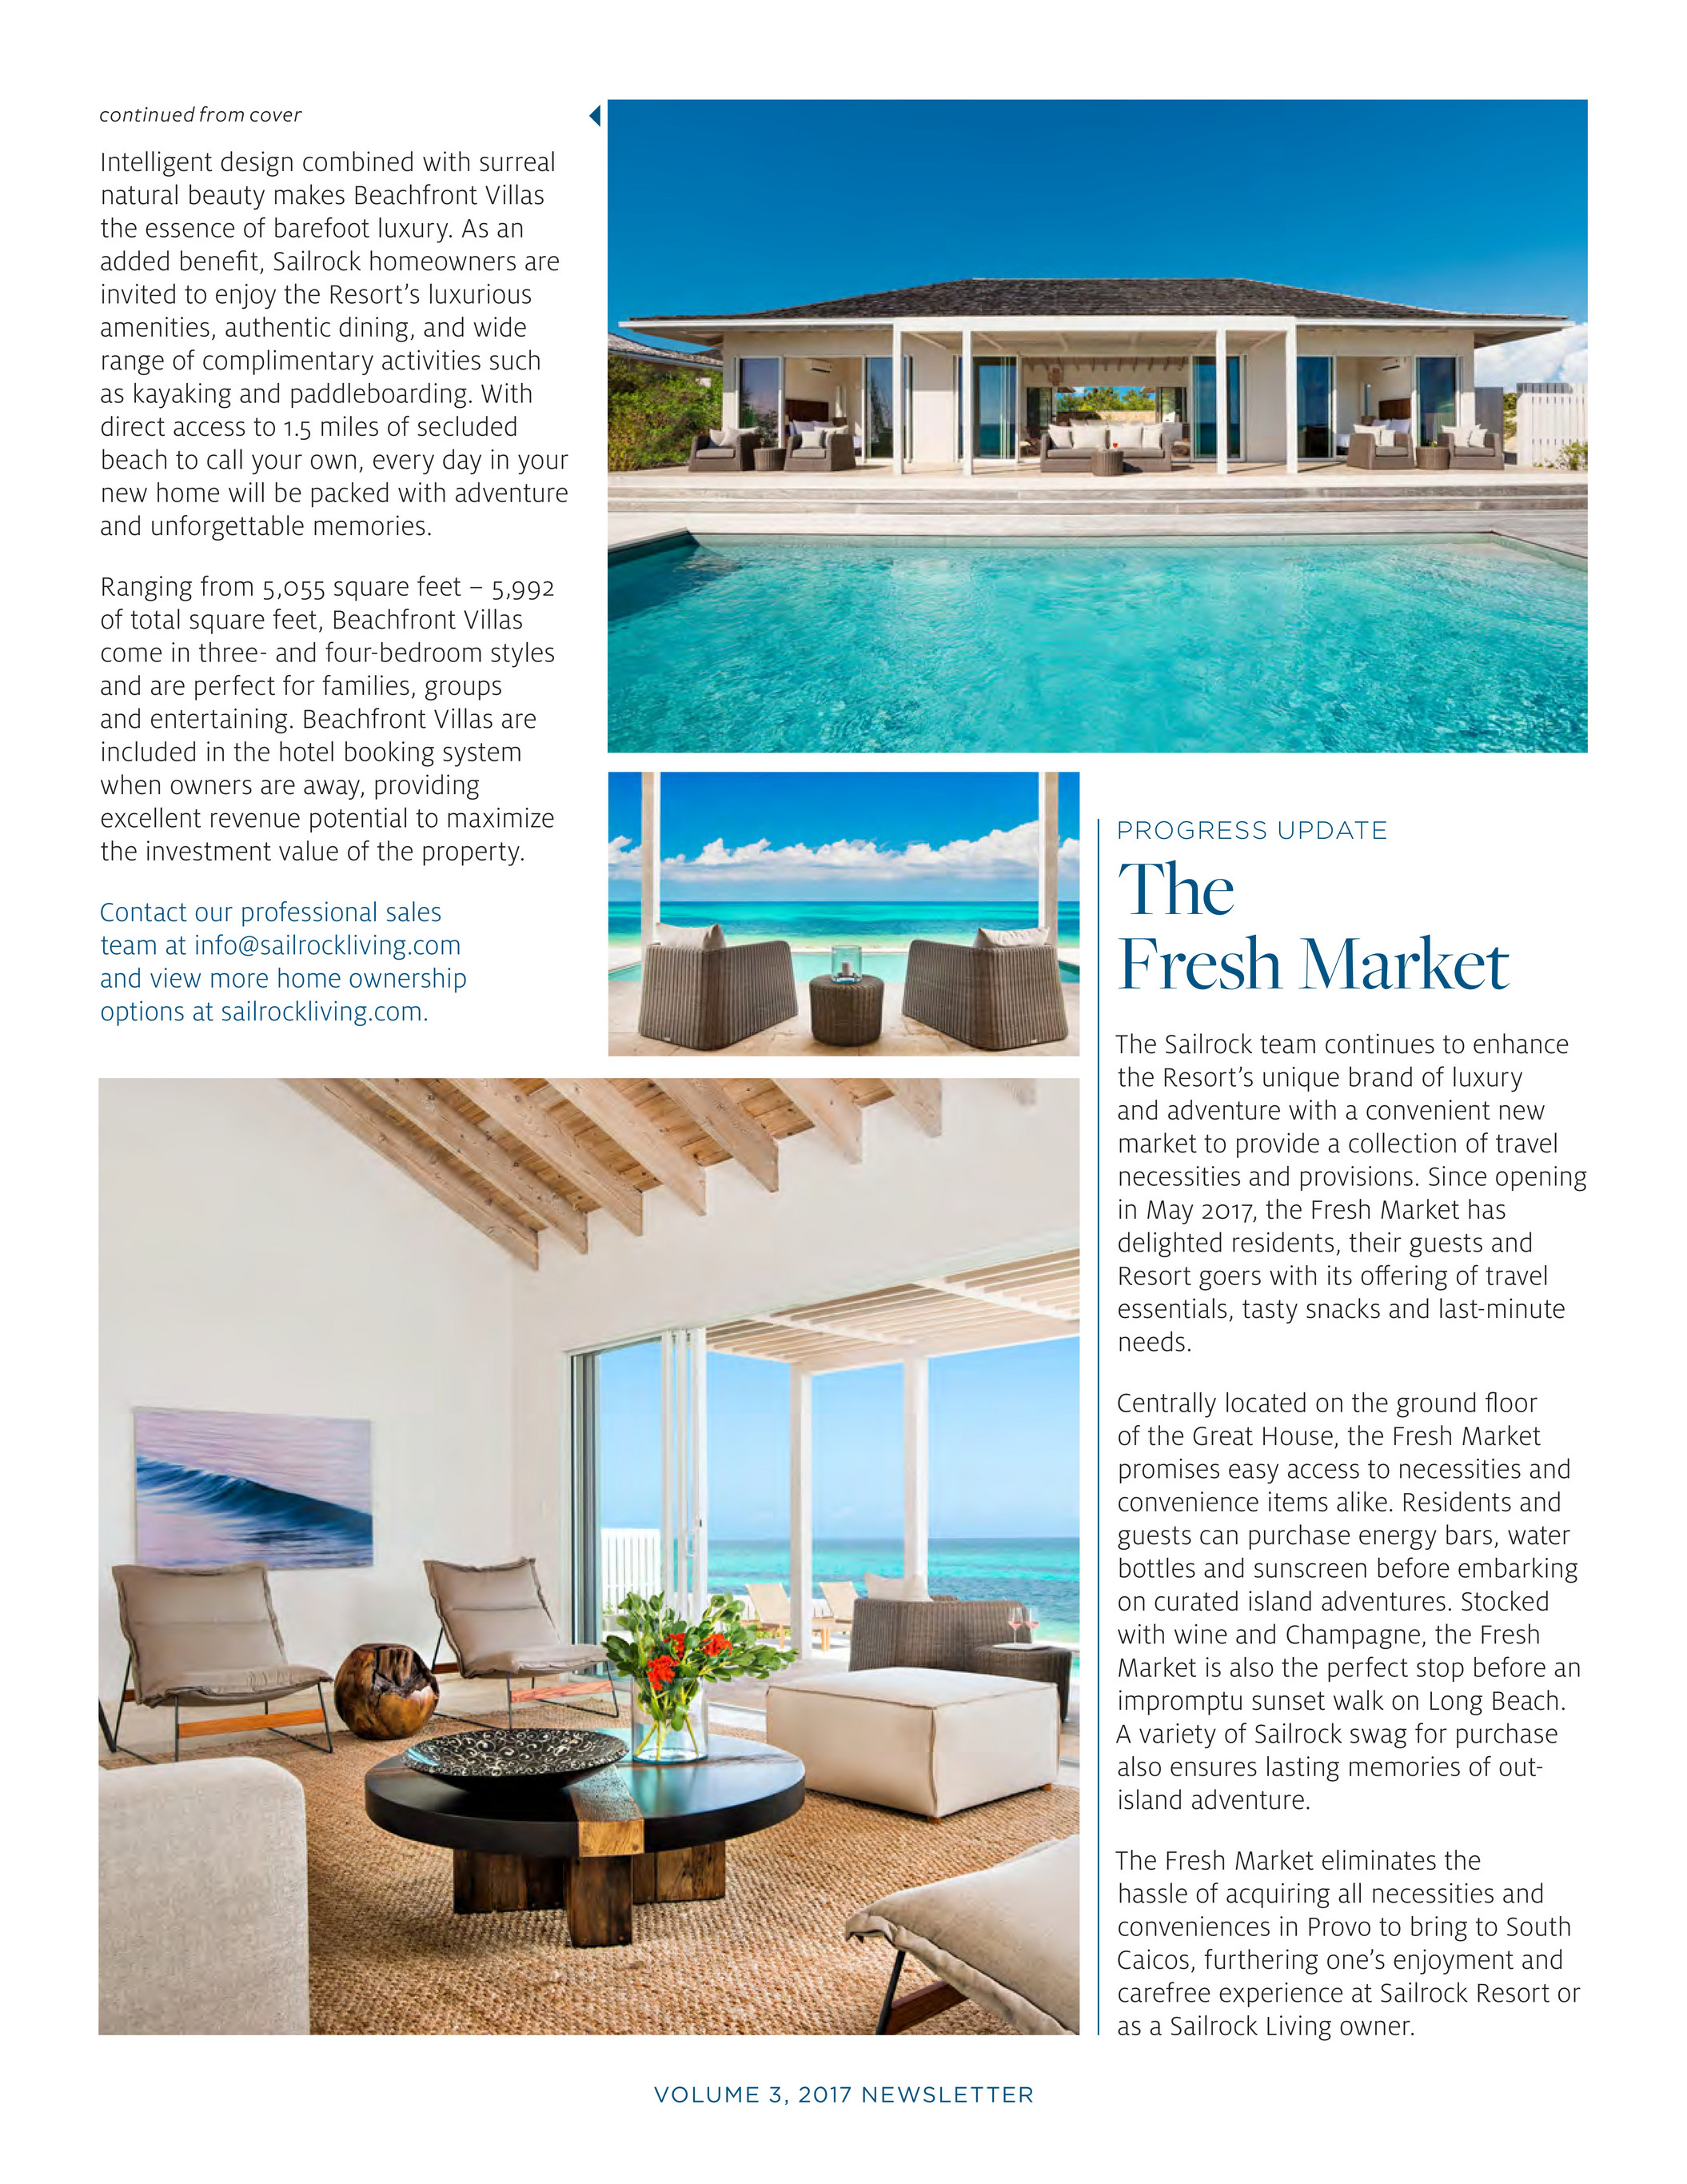 Sailrock South Caicos Quarterly Newsletter Volume 3 2017 Page 1 Created With Publitas Com